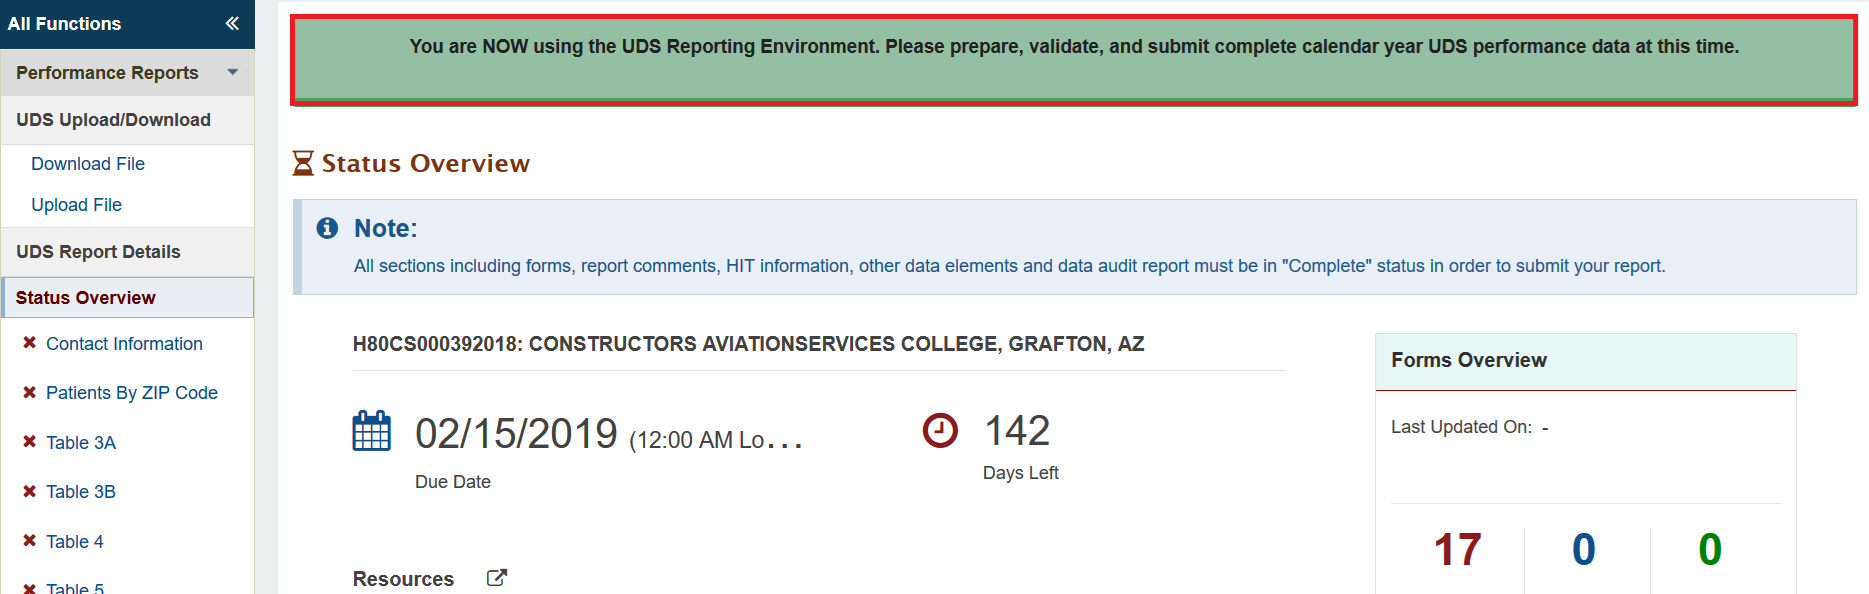 Main UDS reporting environment message on top of page